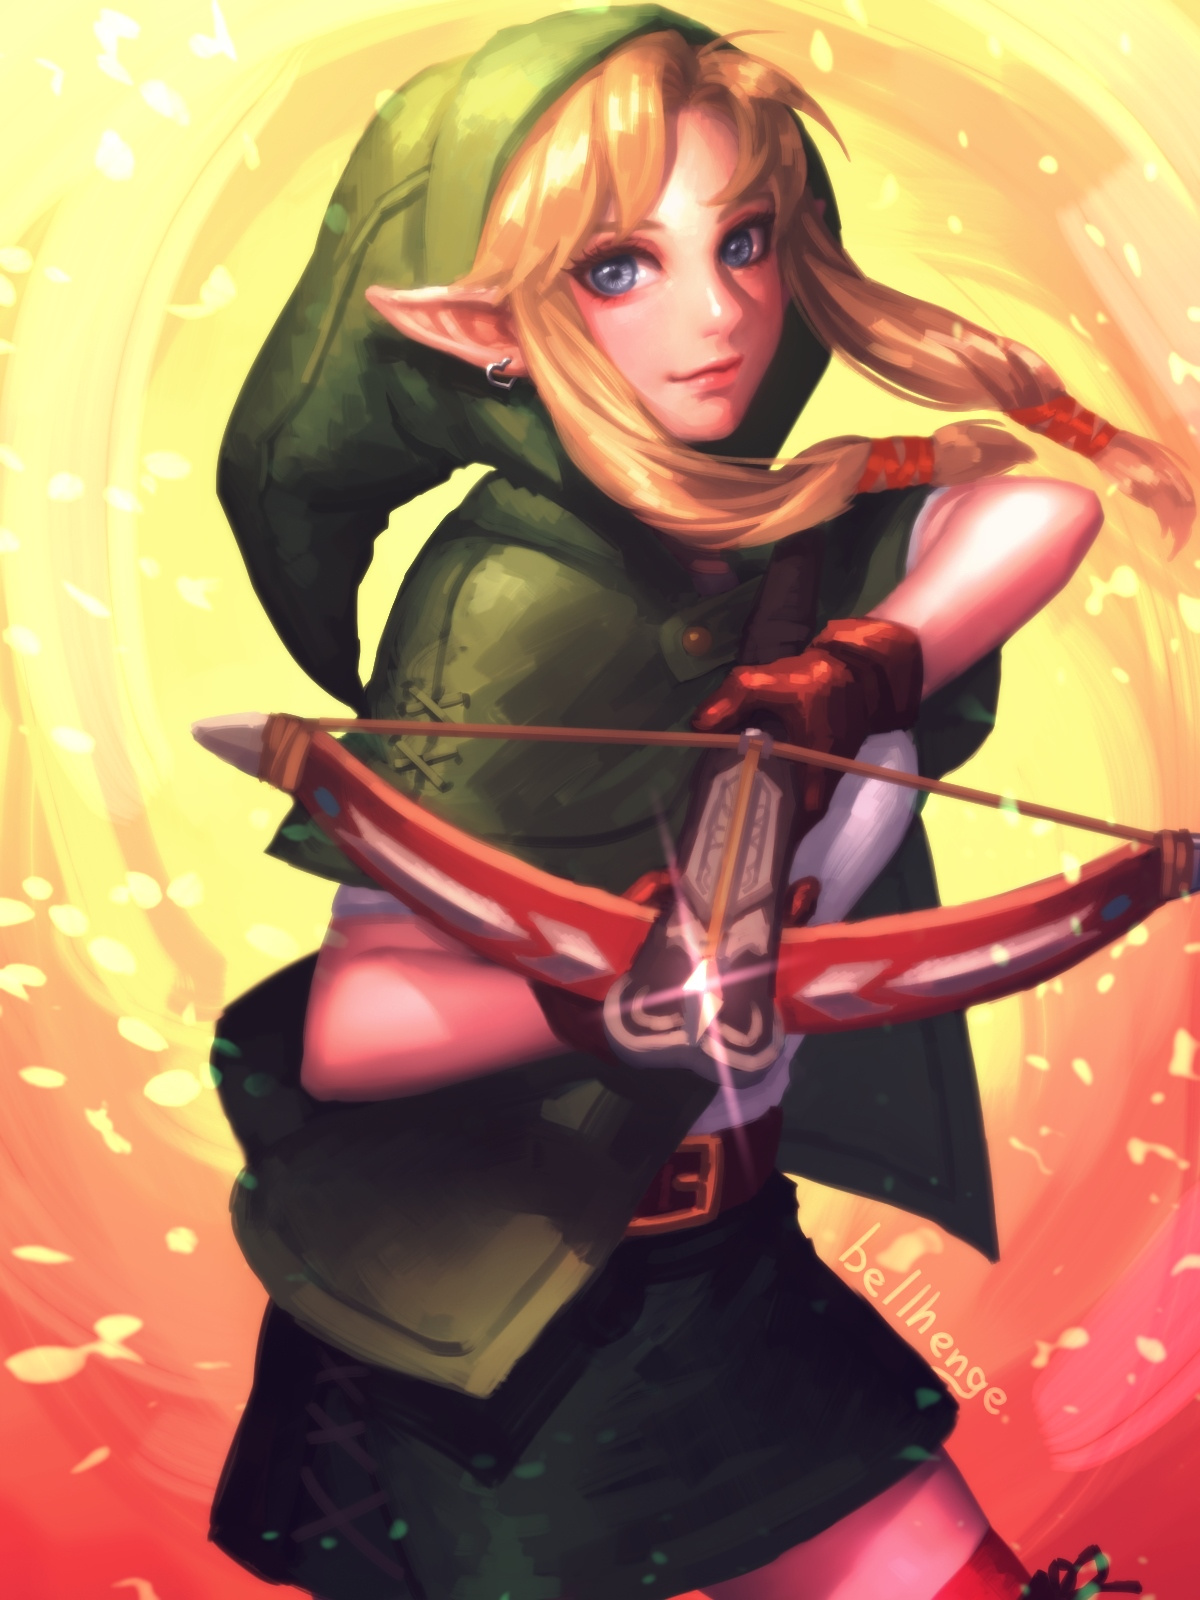 http://images.nintendolife.com/news/2015/11/art_theres_loads_of_awesome_linkle_fan_art_available_already/attachment/4/original.jpg